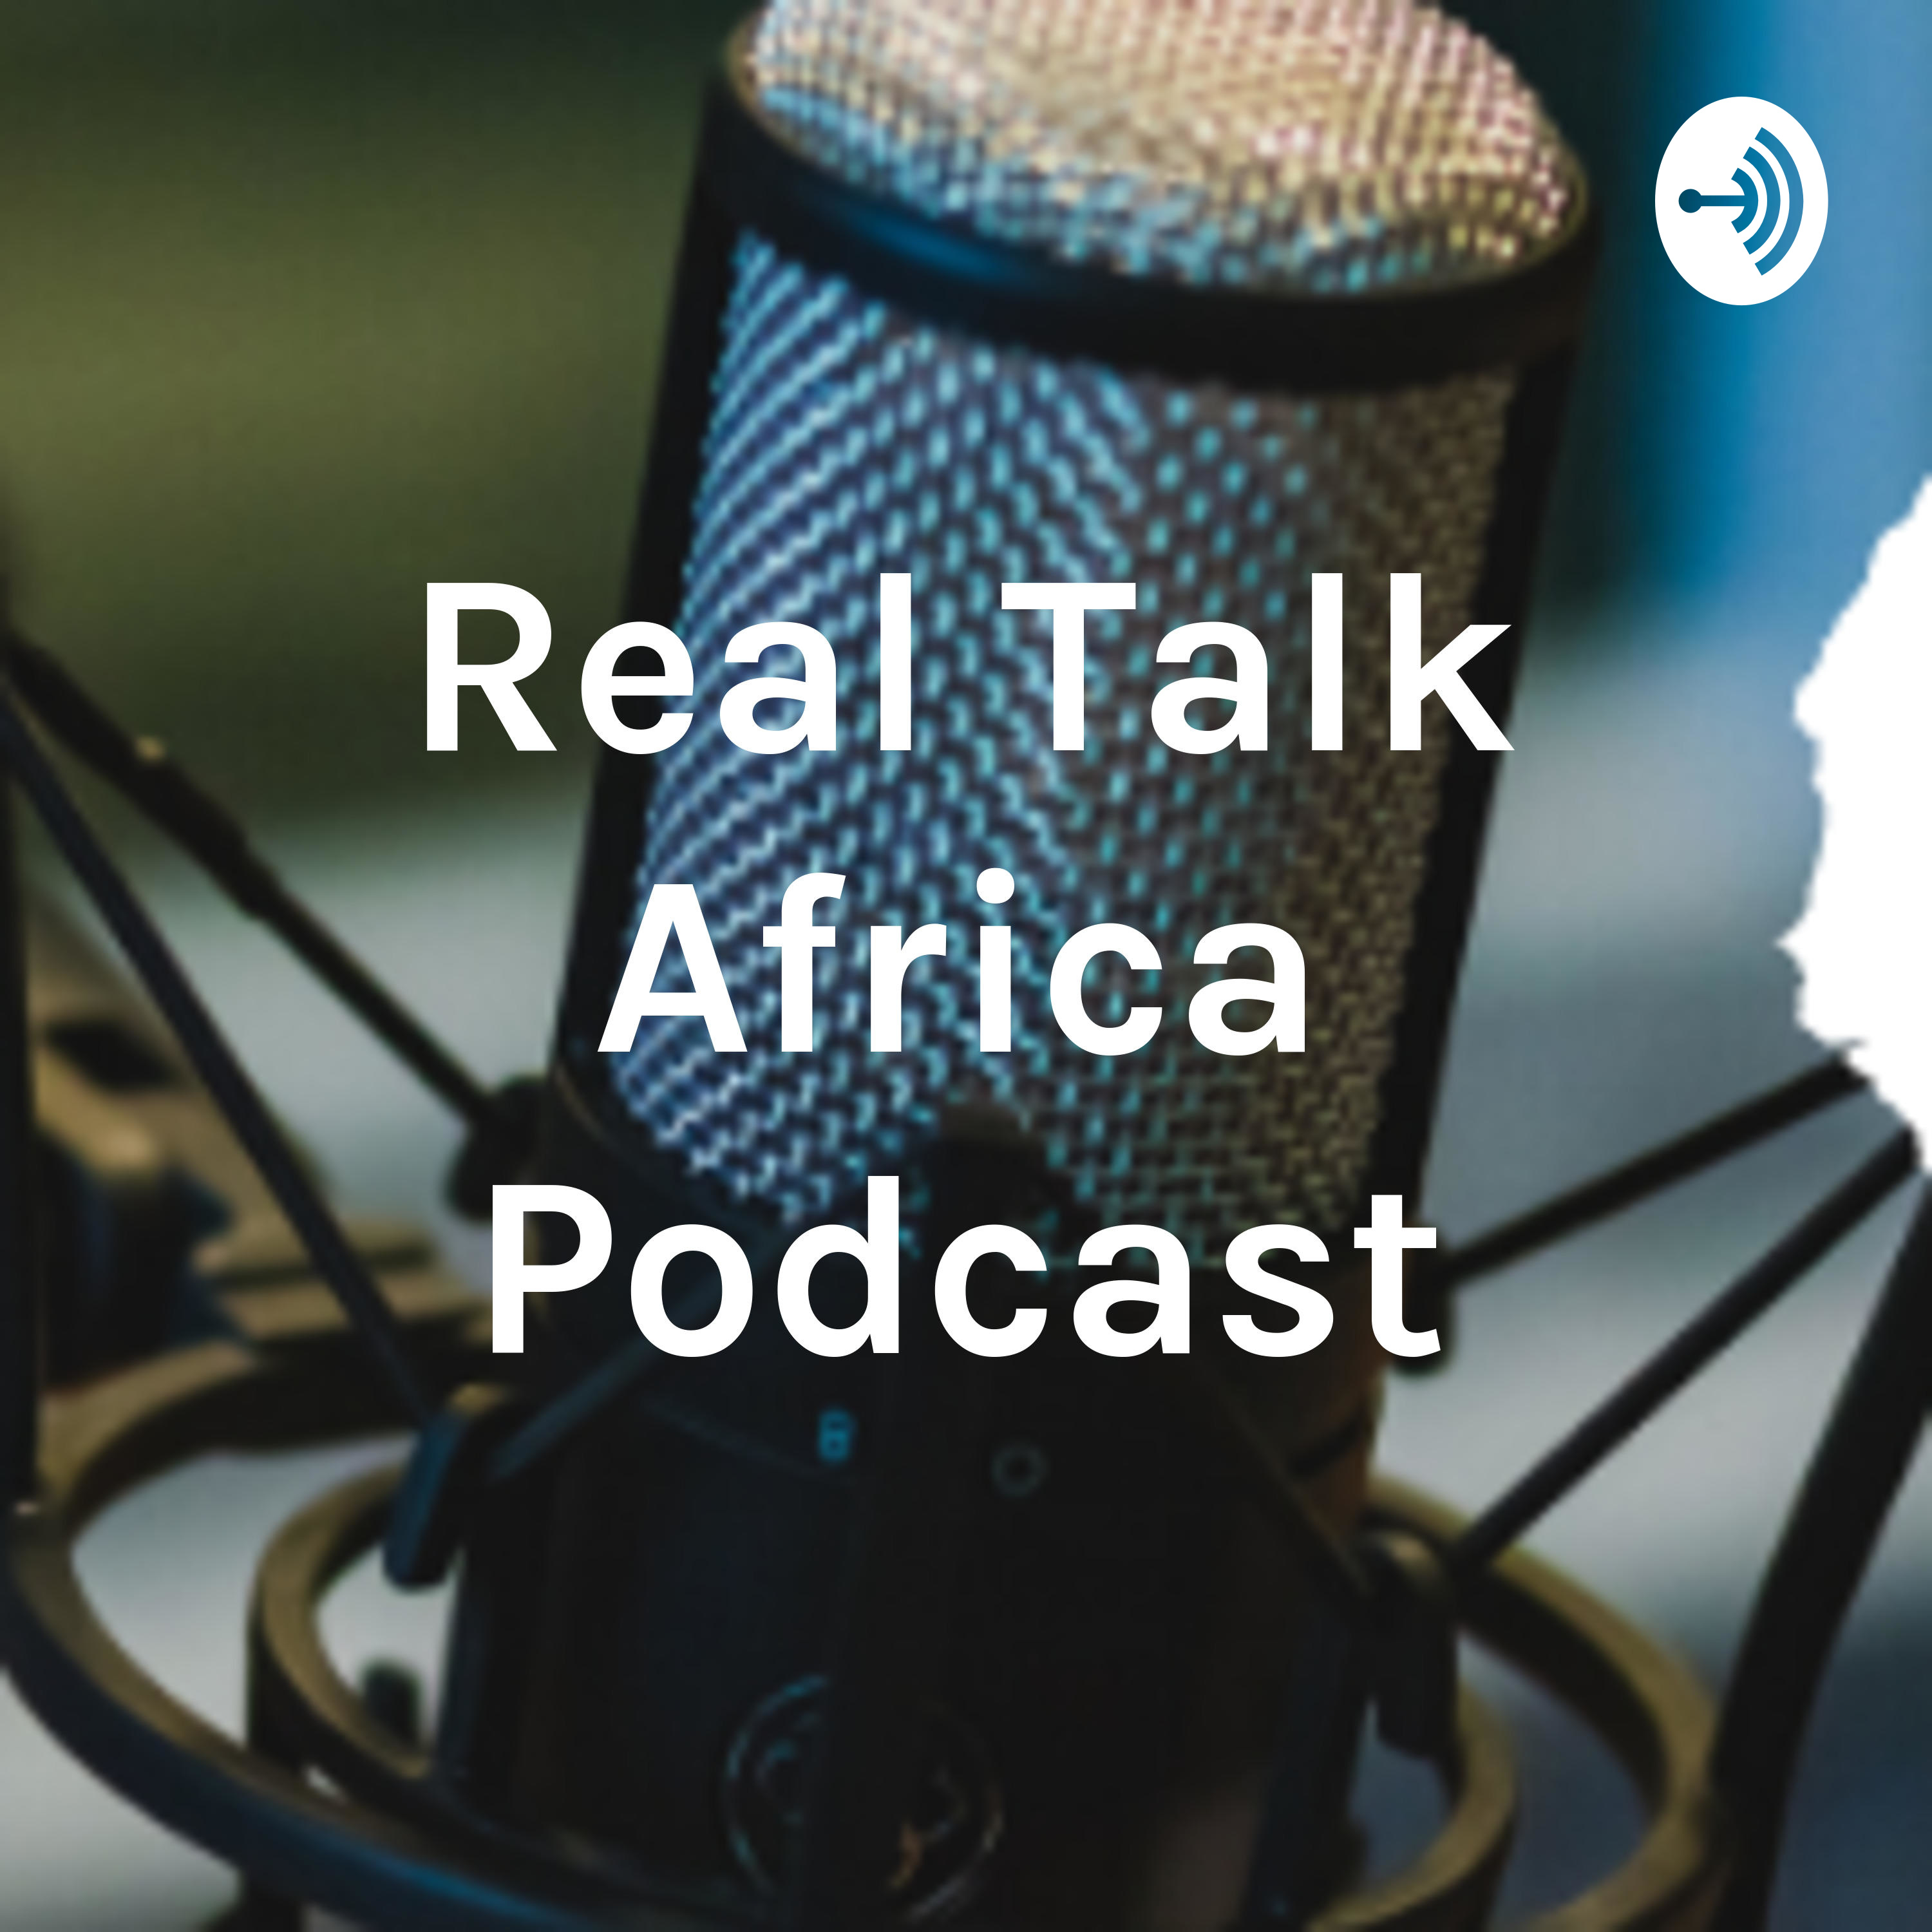 Real Talk Africa Podcast podcast